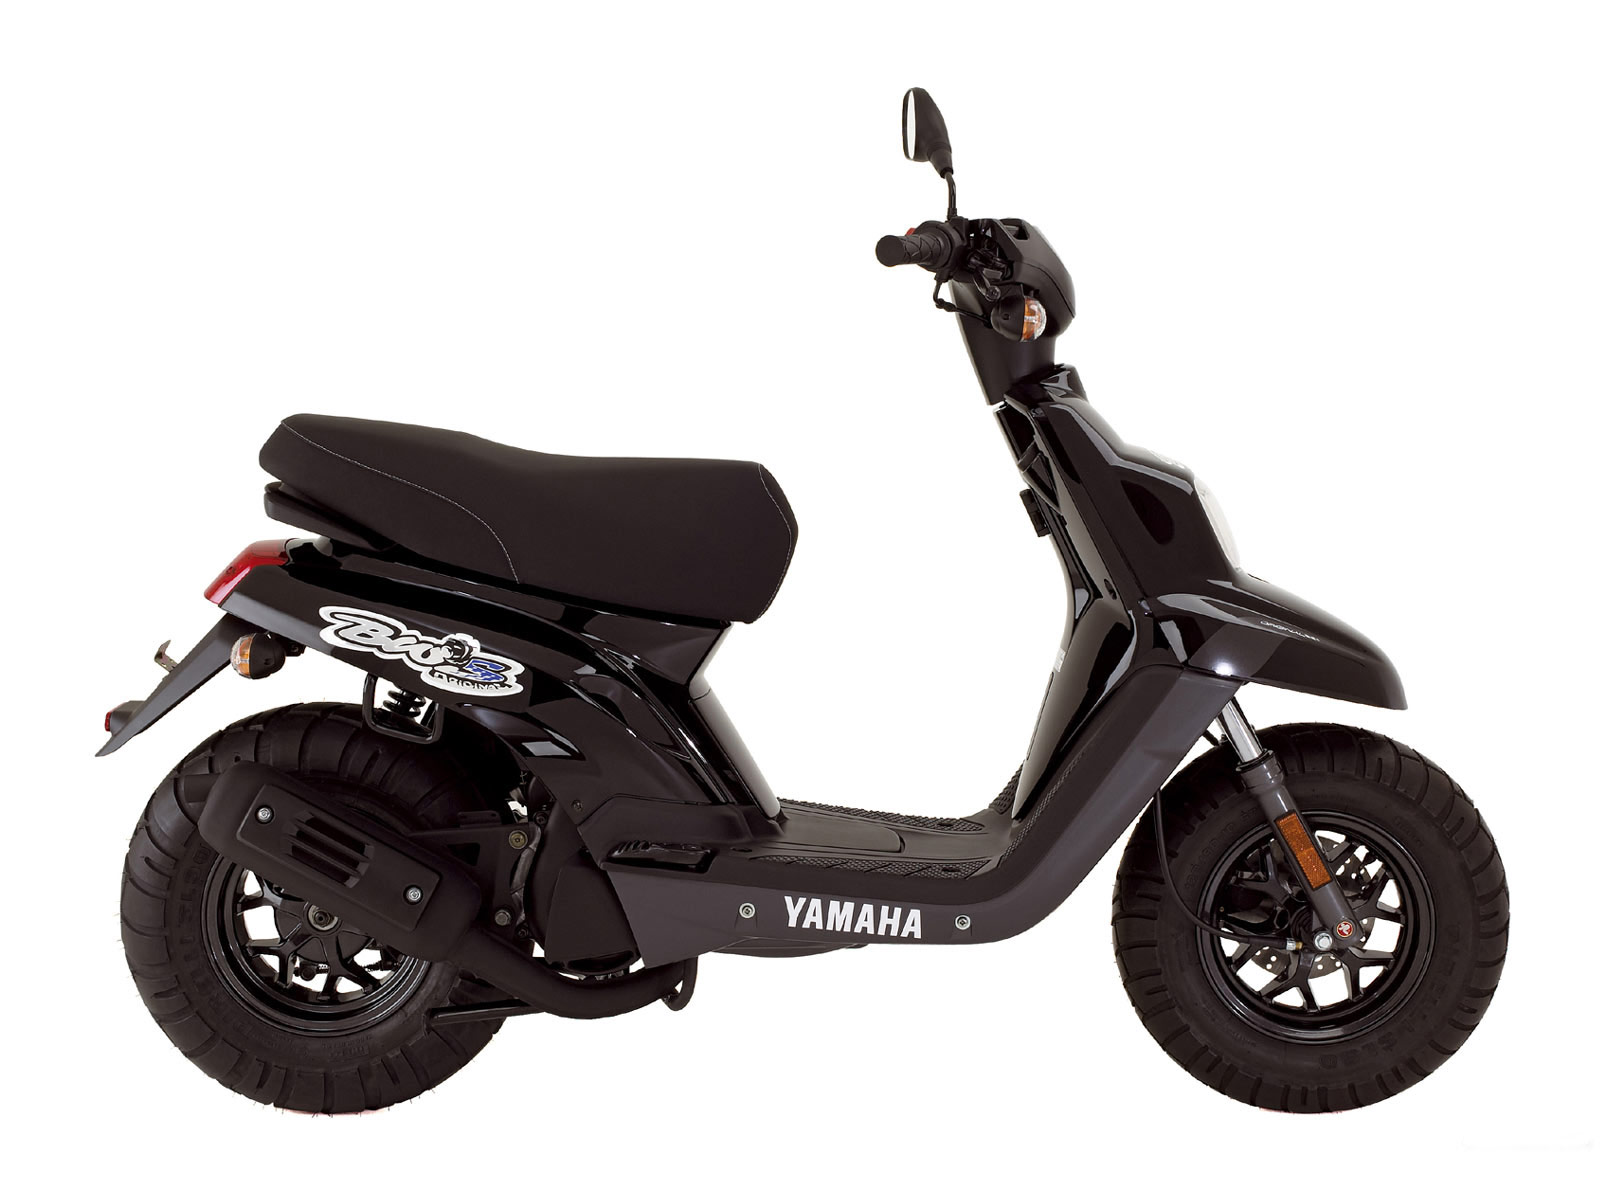 2007 YAMAHA Slider Naked Scooter insurance, pictures